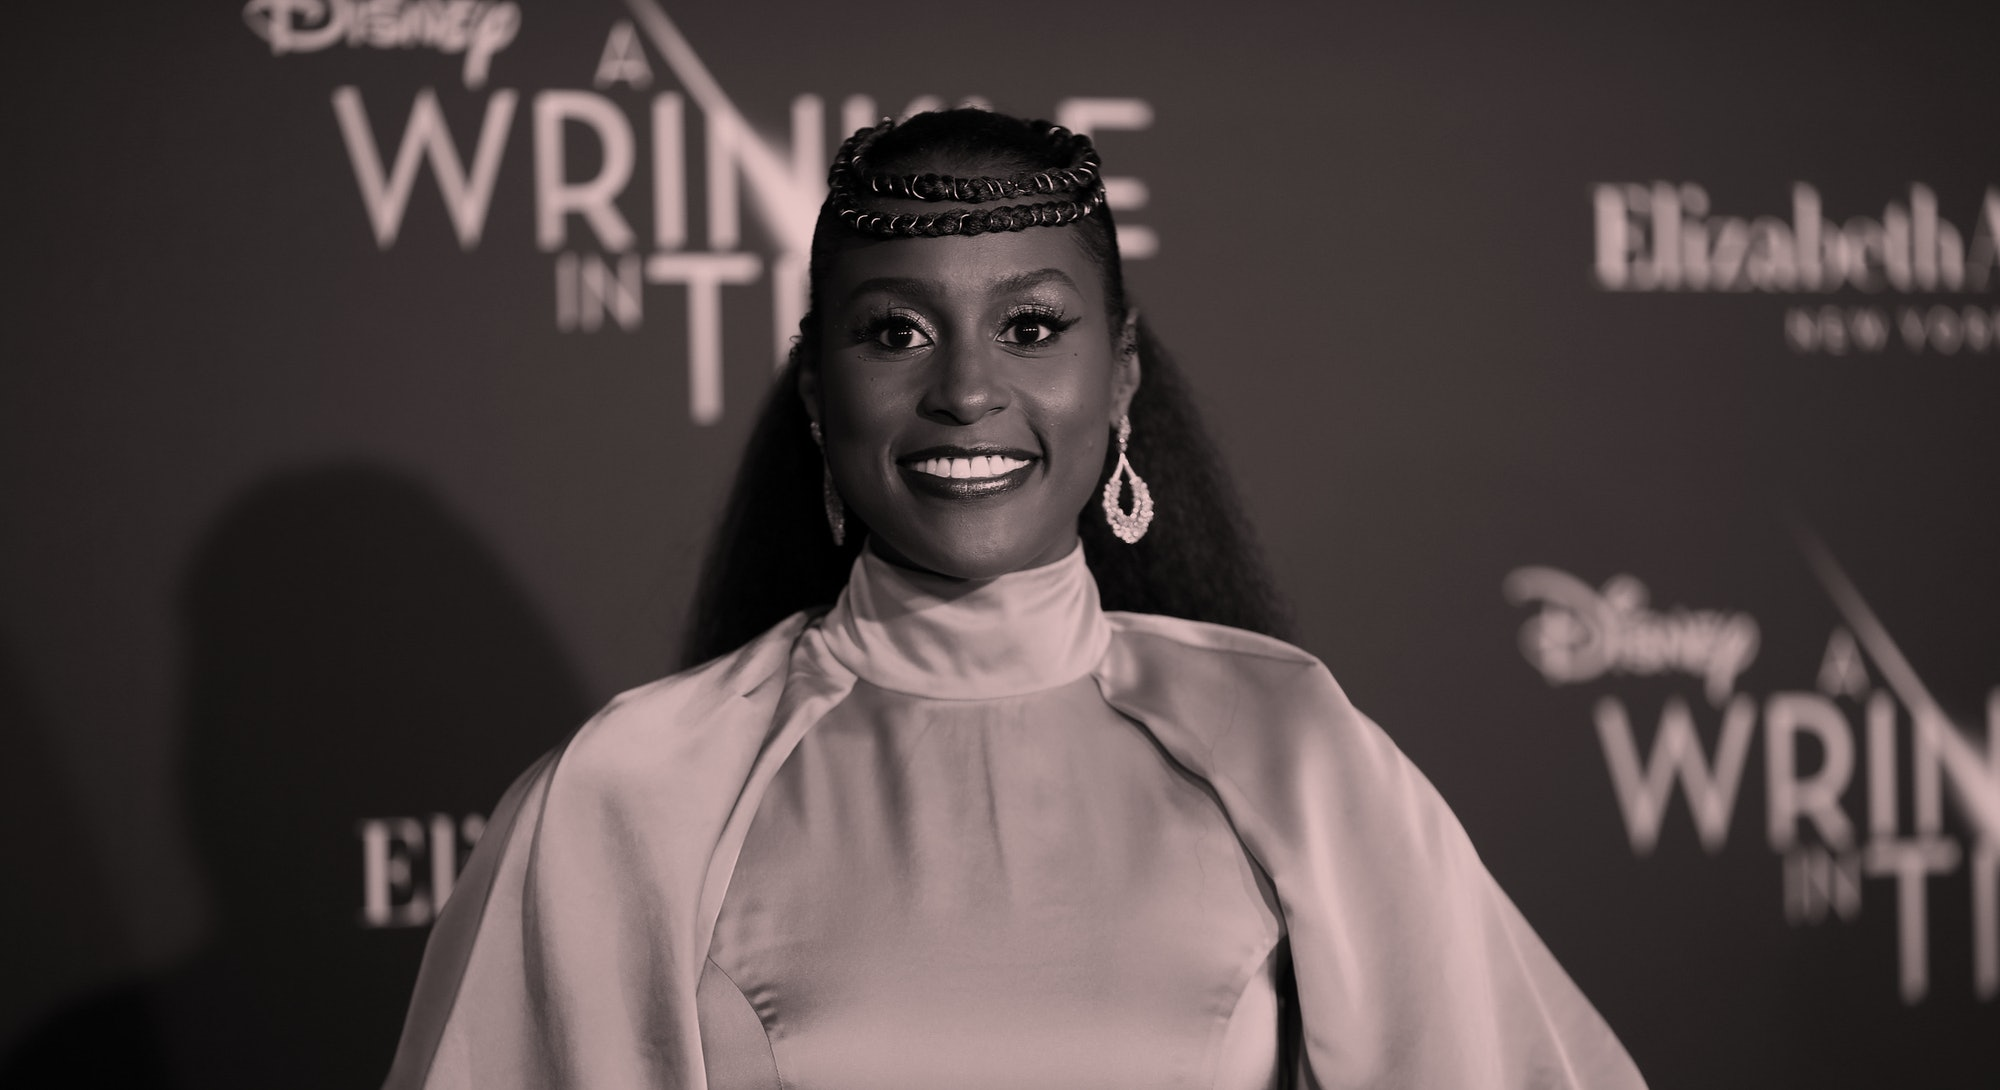 Issa Rae wears a yellow dress at the premiere red carpet for A Wrinkle In Time